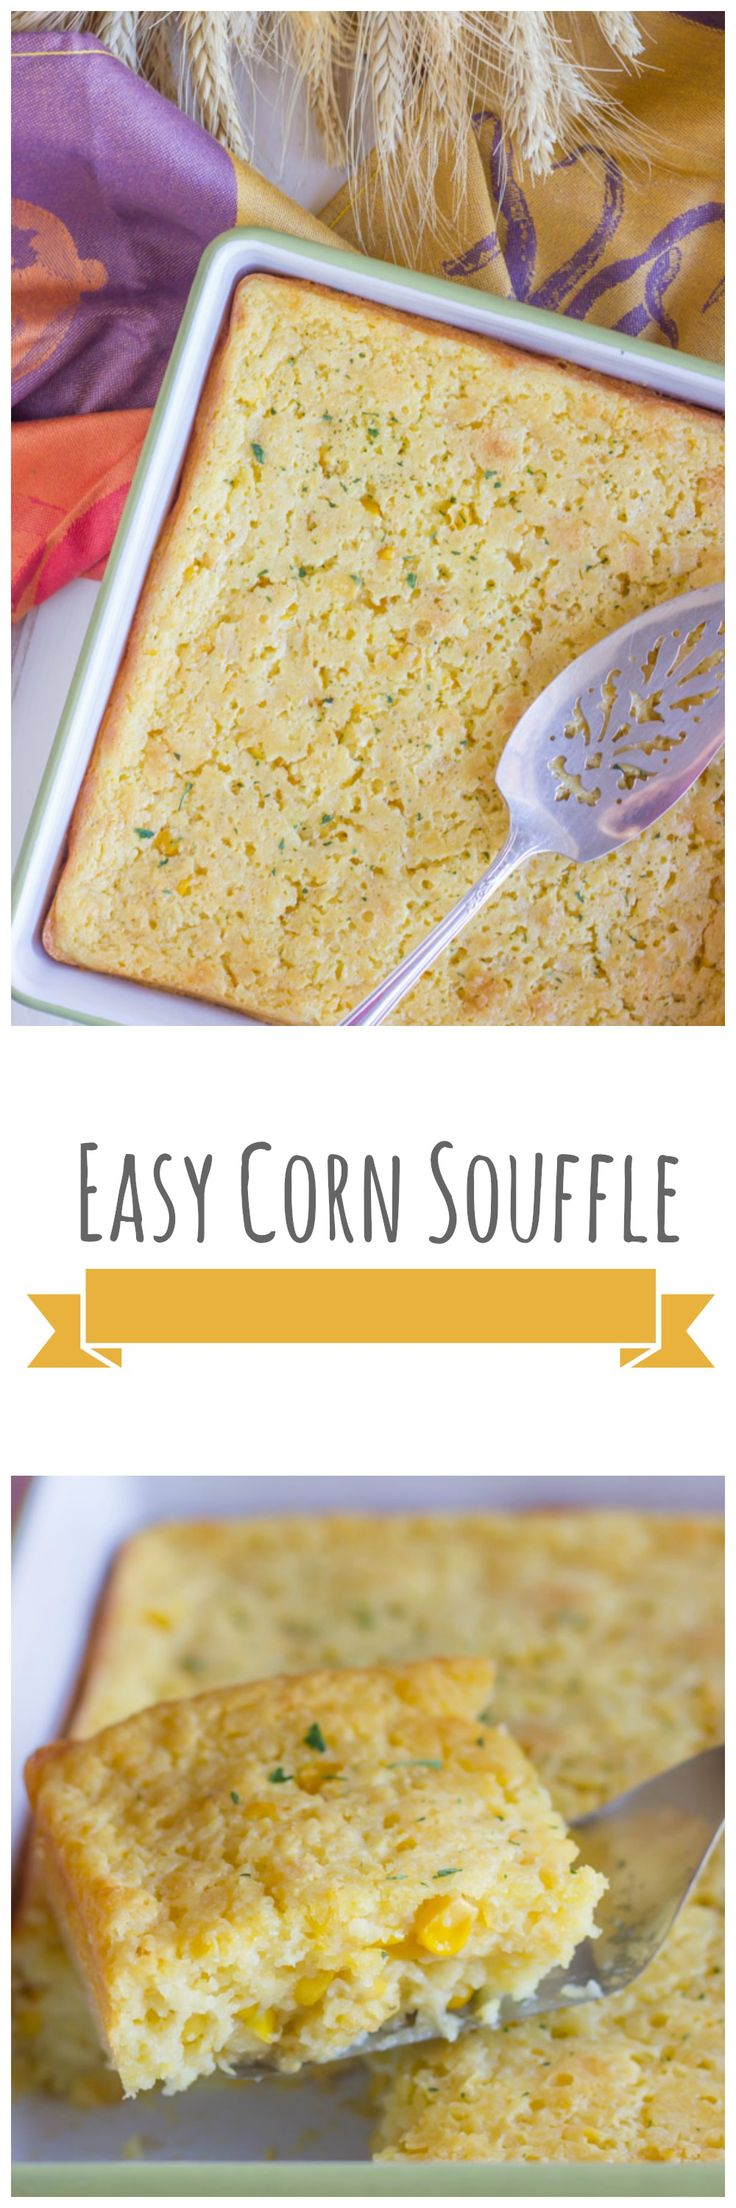 Super quick and easy corn souffle!